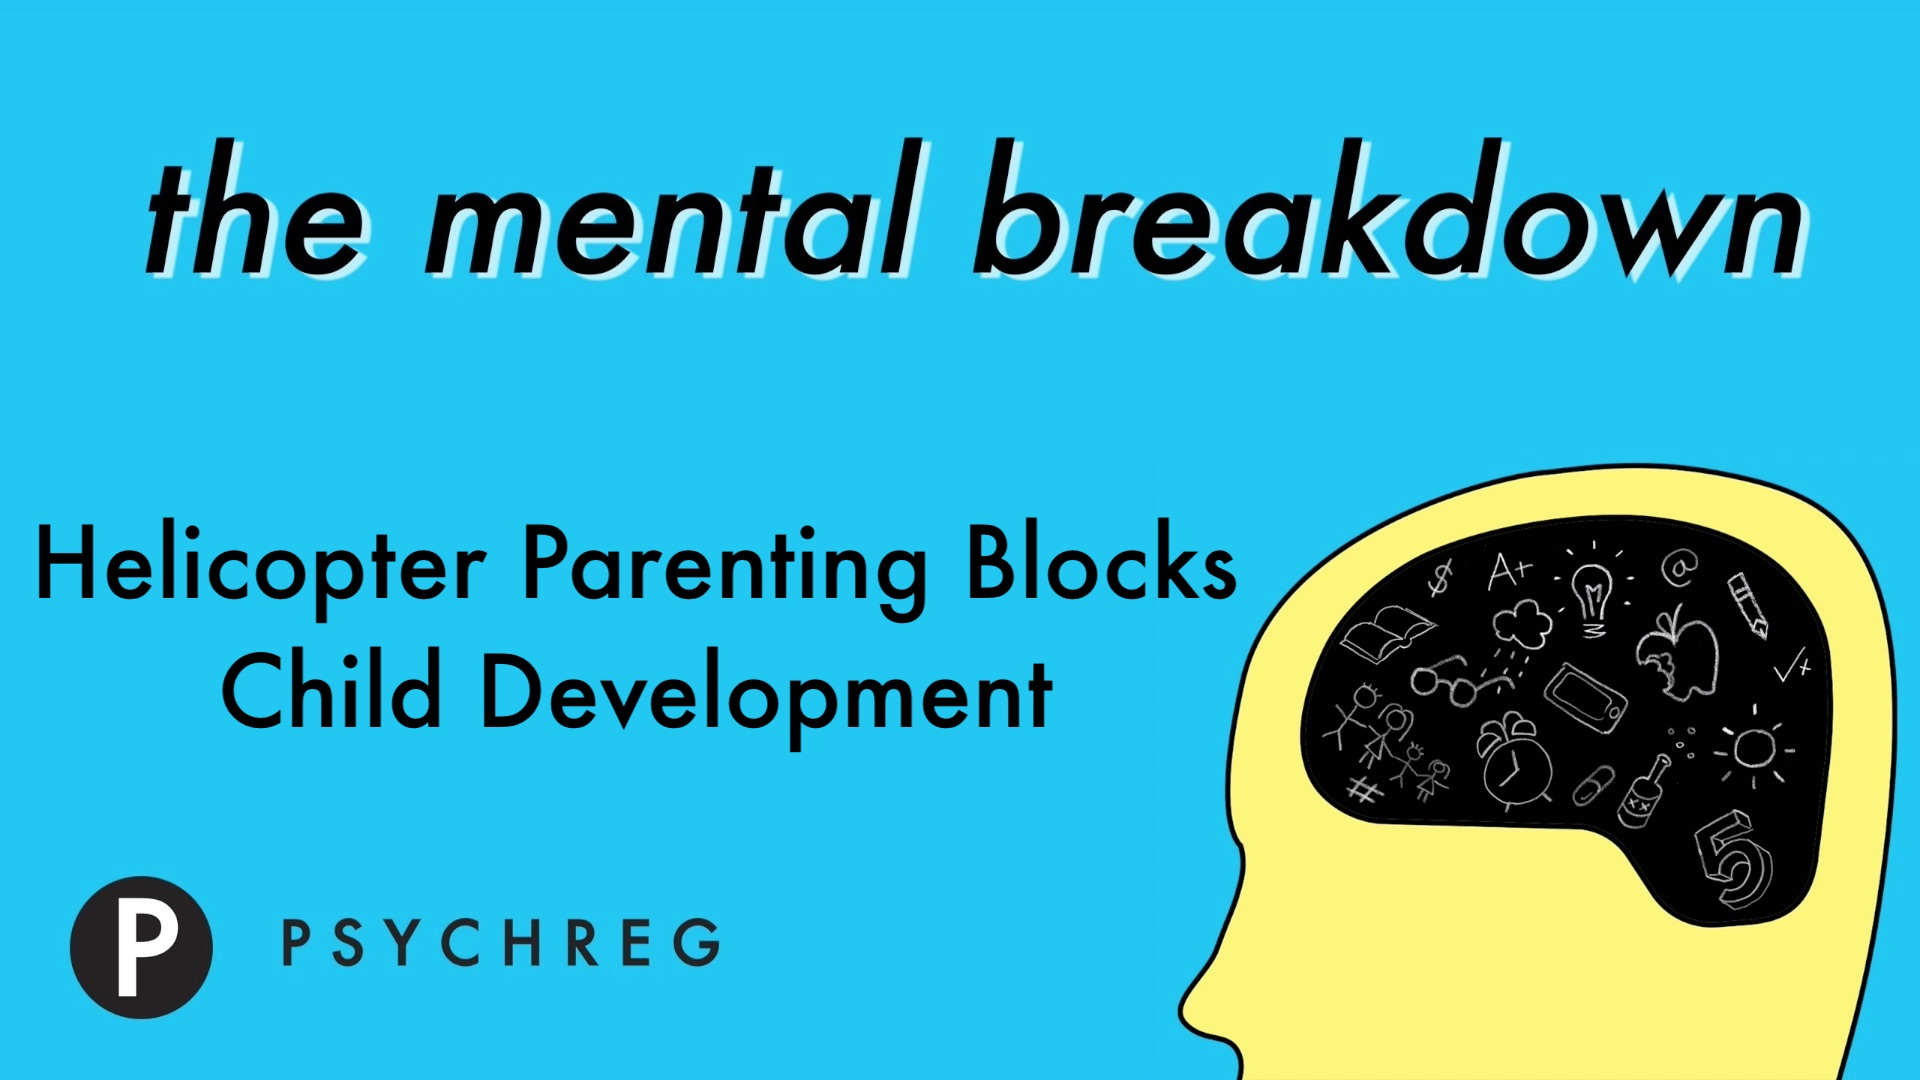 Helicopter Parenting May Negatively Affect Childrens Emotional >> Helicopter Parenting Blocks Child Development The Mental Breakdown